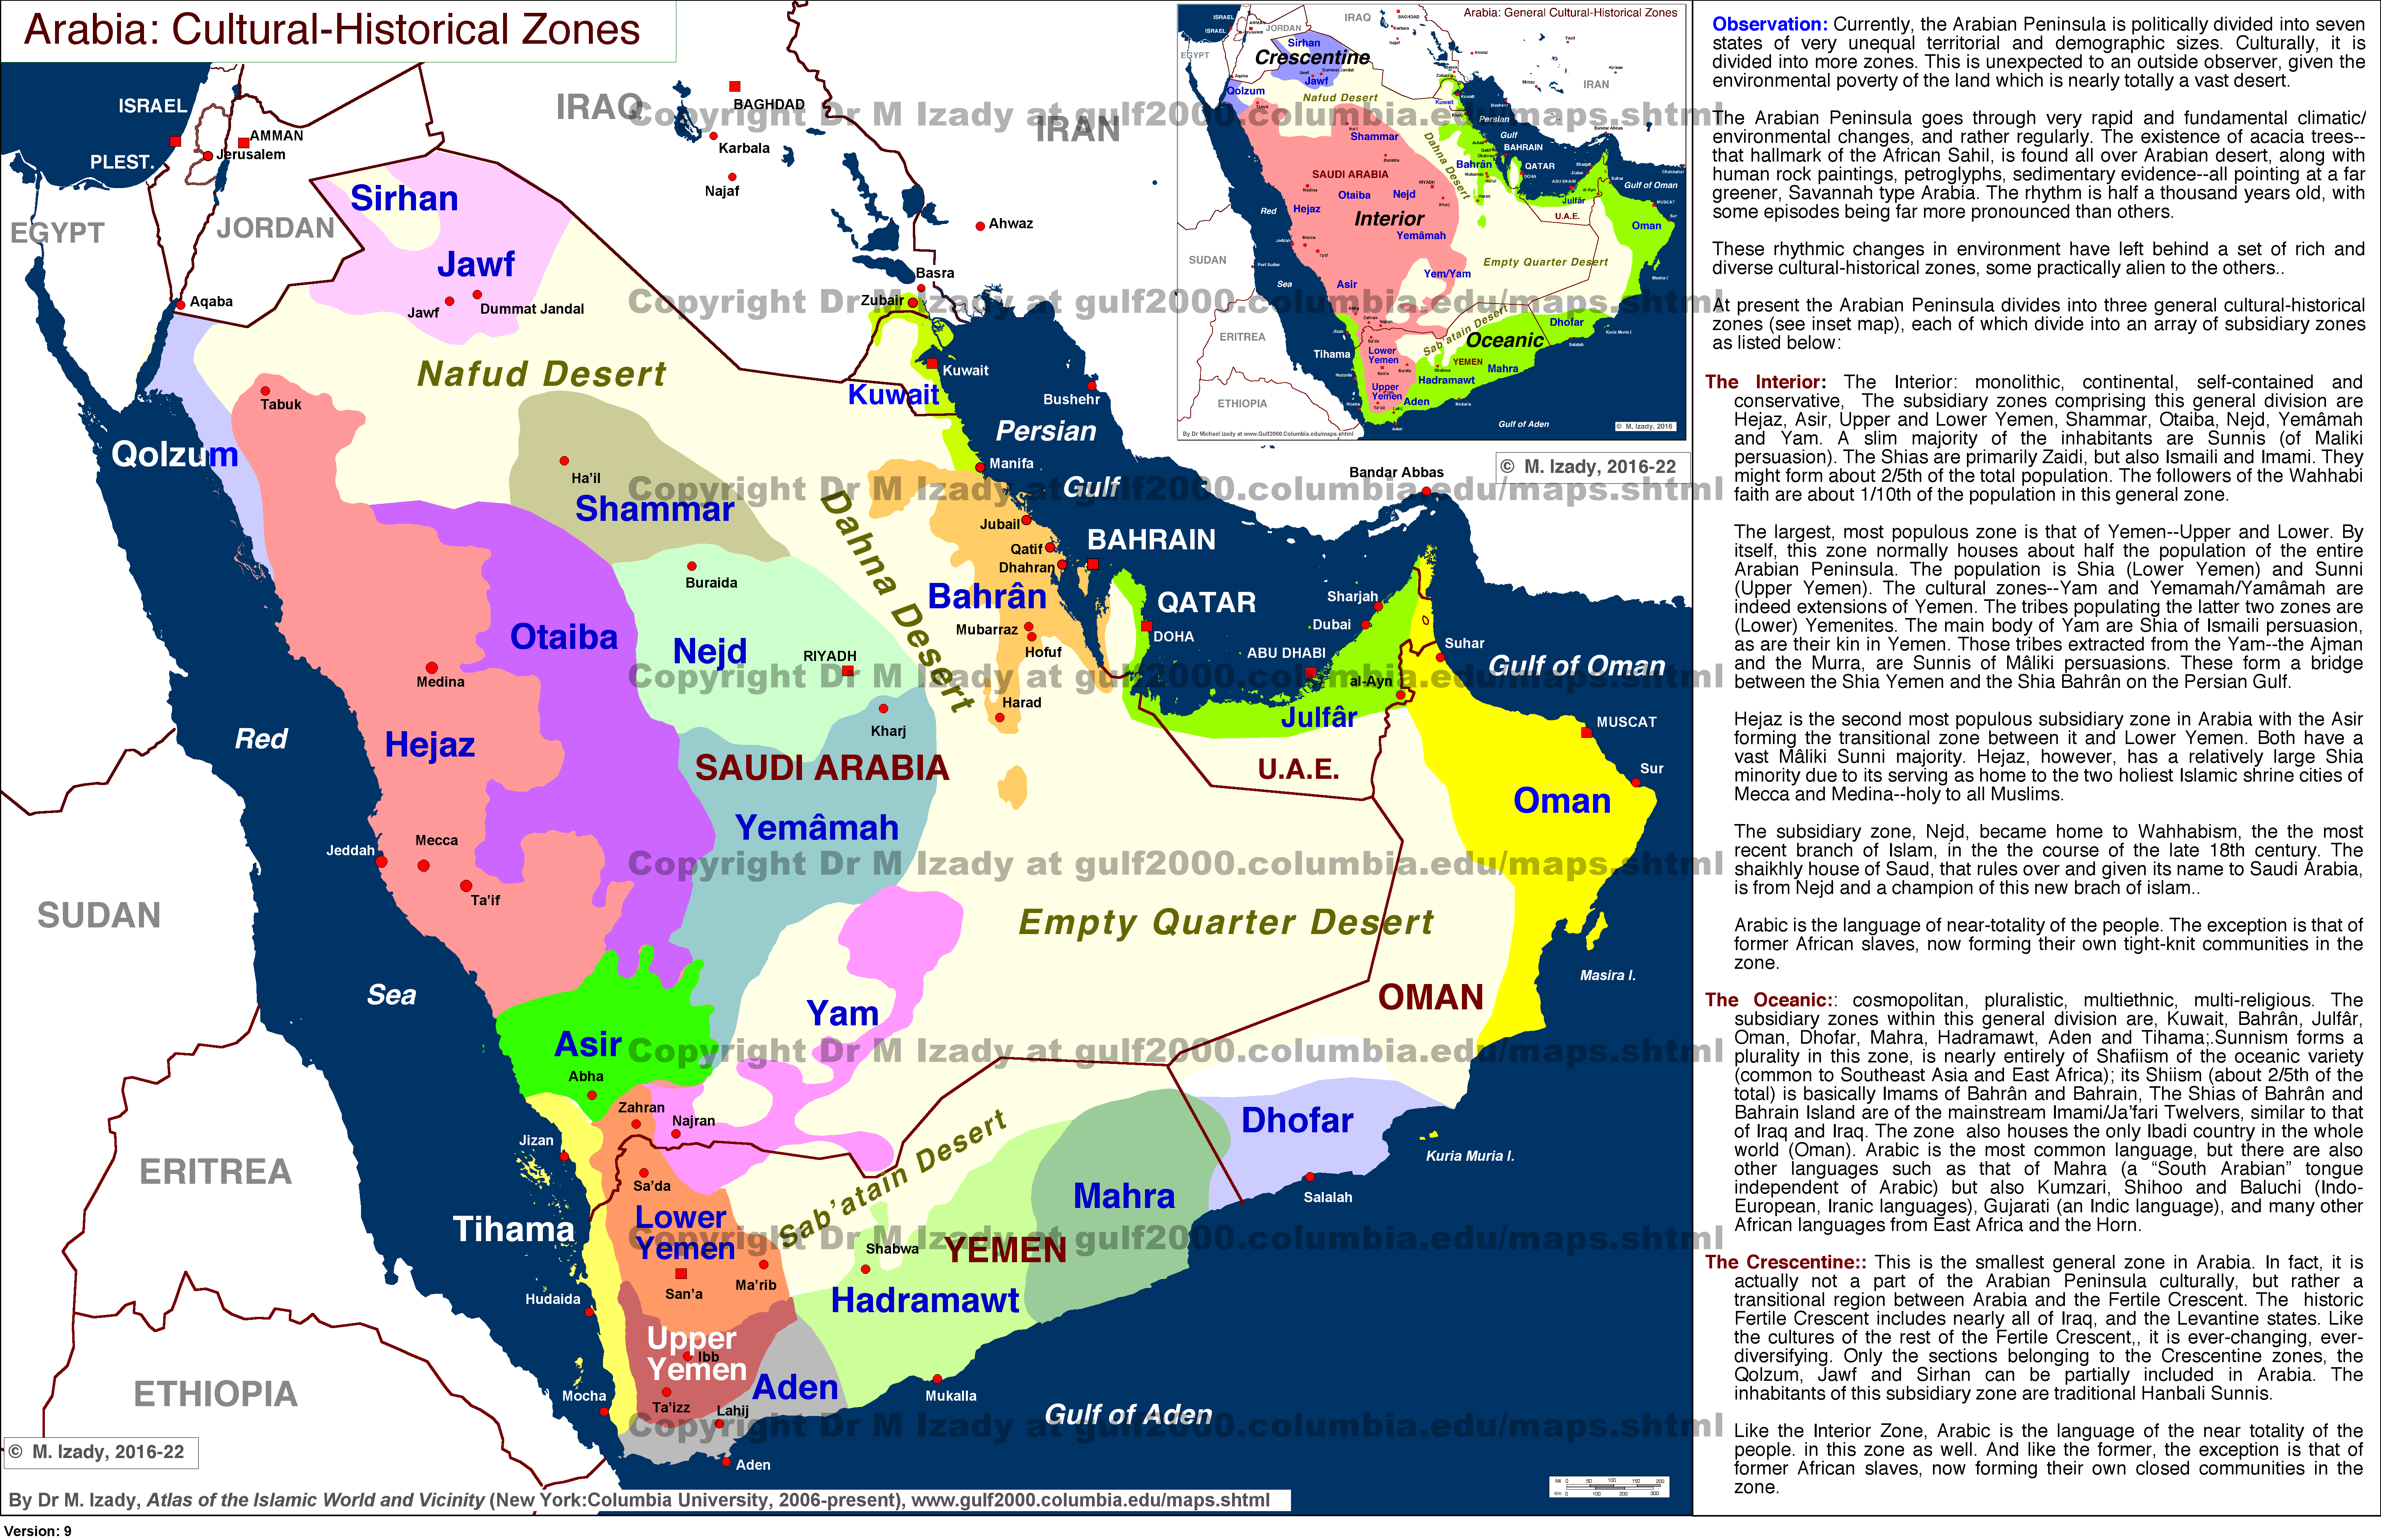 a report on the climate economy population and government of yemen a country in the arabian peninsul The country has one of the highest population result of climate change phenomena moreover, yemen faces country in the arabian peninsula to.